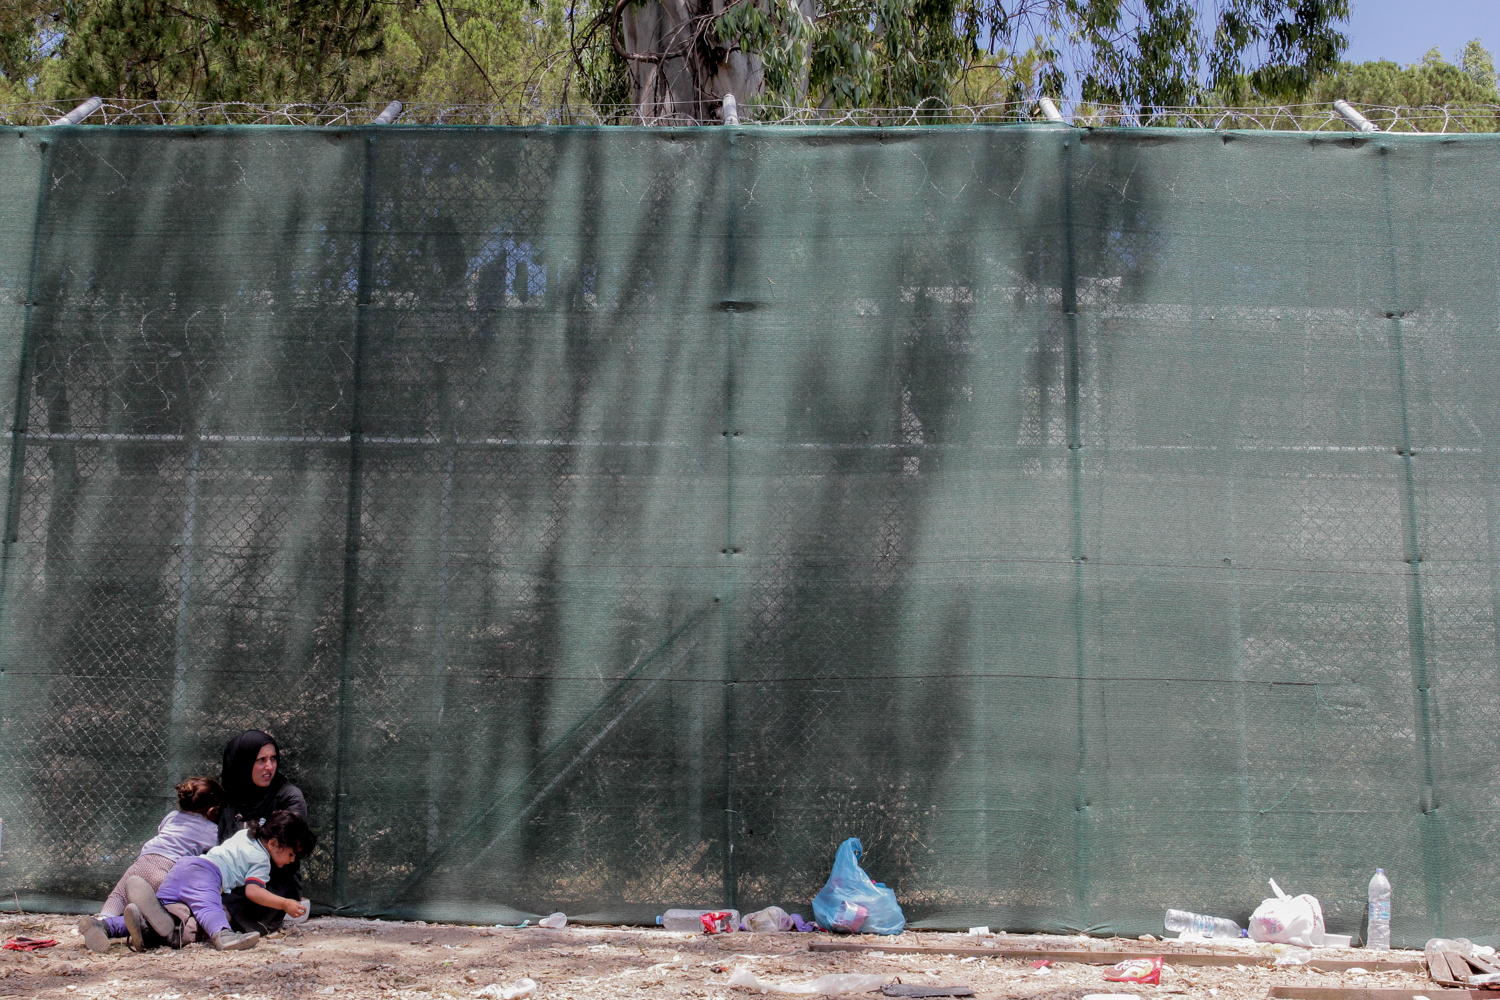 A woman and her two young children try to find some shade at Moria detention centre